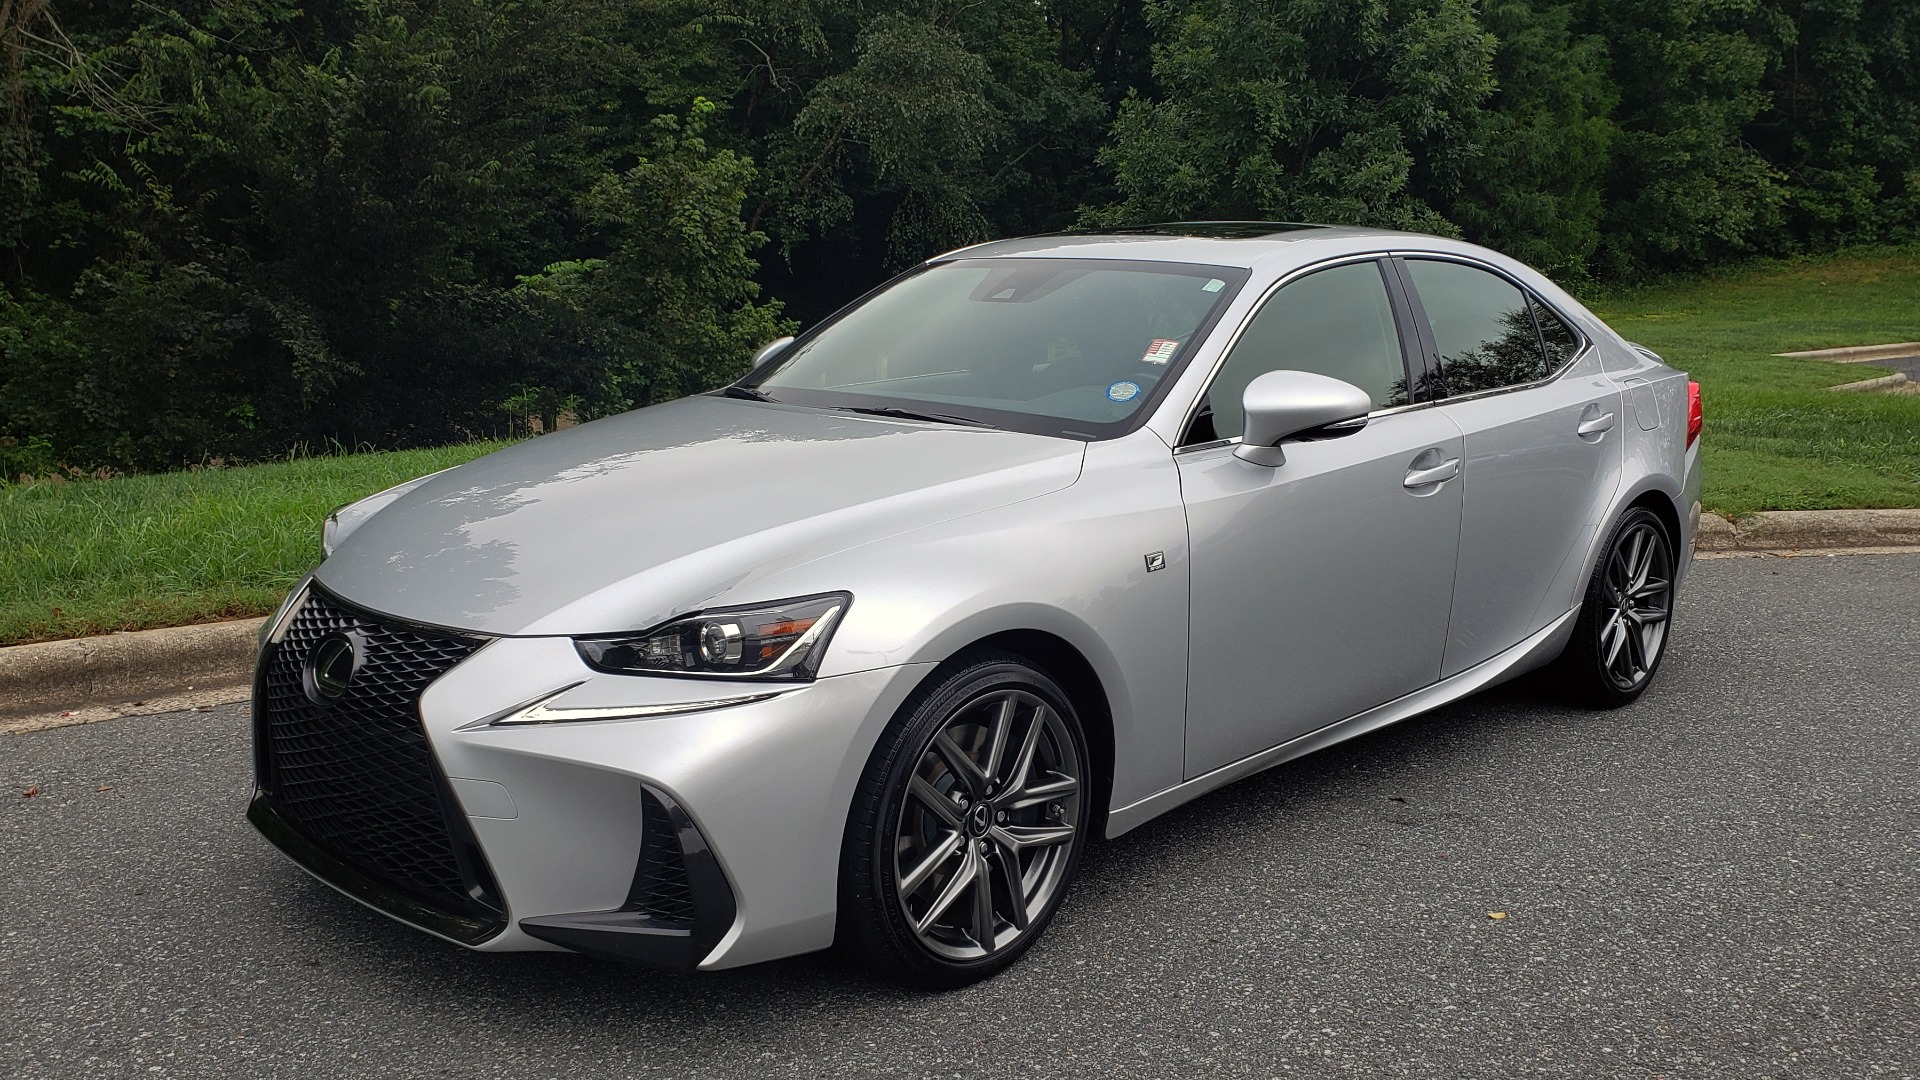 Used 2017 Lexus IS 200T F-SPORT / LEATHER / SUNROOF / 18IN WHEELS / REARVIEW for sale Sold at Formula Imports in Charlotte NC 28227 2